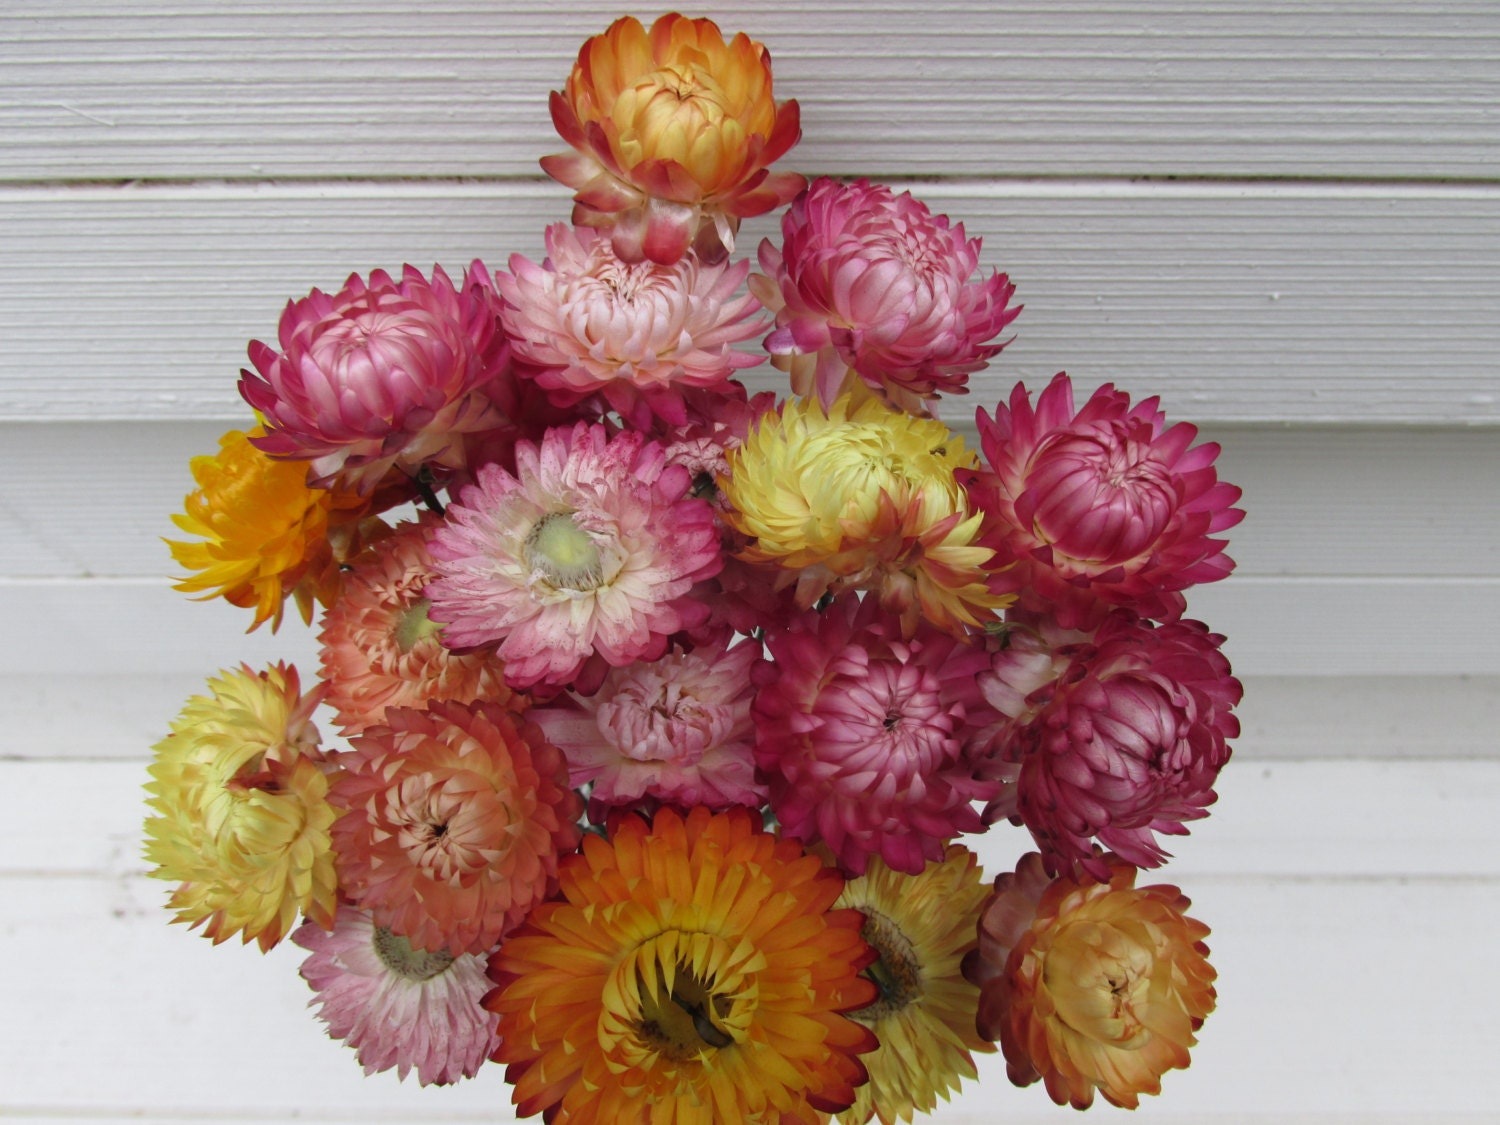 Dried Strawflowers 20 Long Wired Stems for Bouquets Crafts